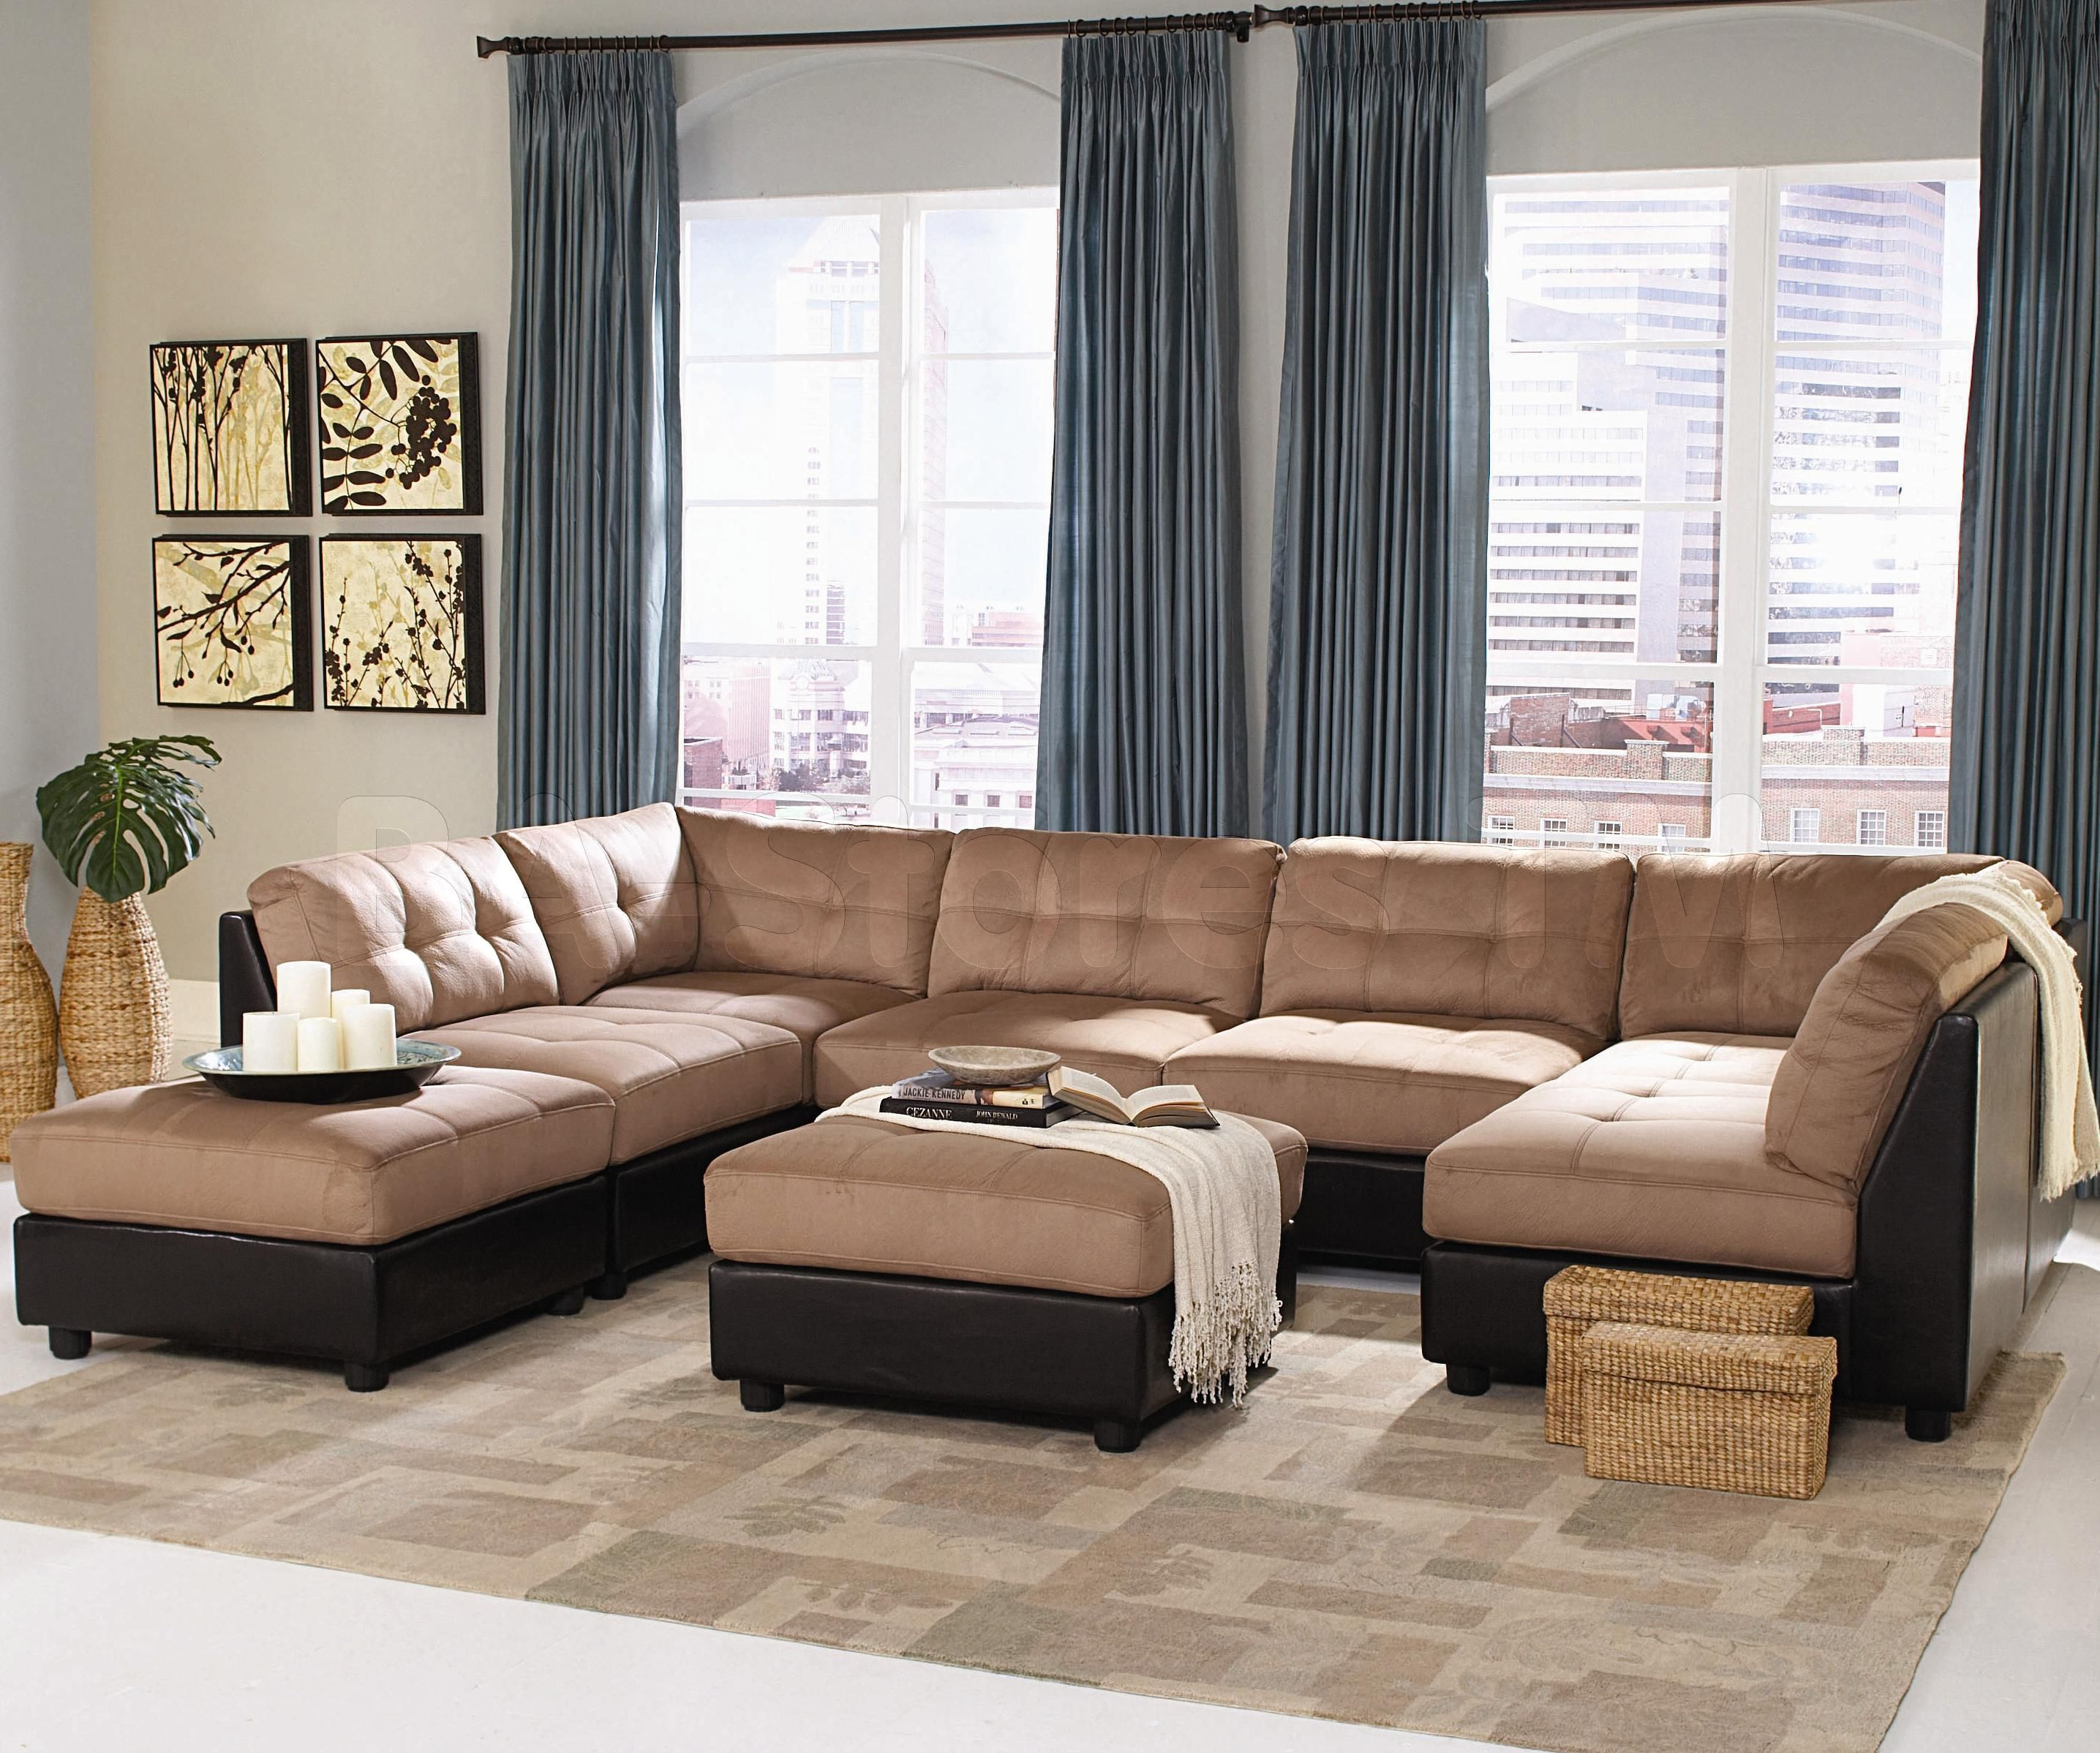 Blue And Brown Sofa: Elegant Brown Sectional Sofa Design Idea For Living Room